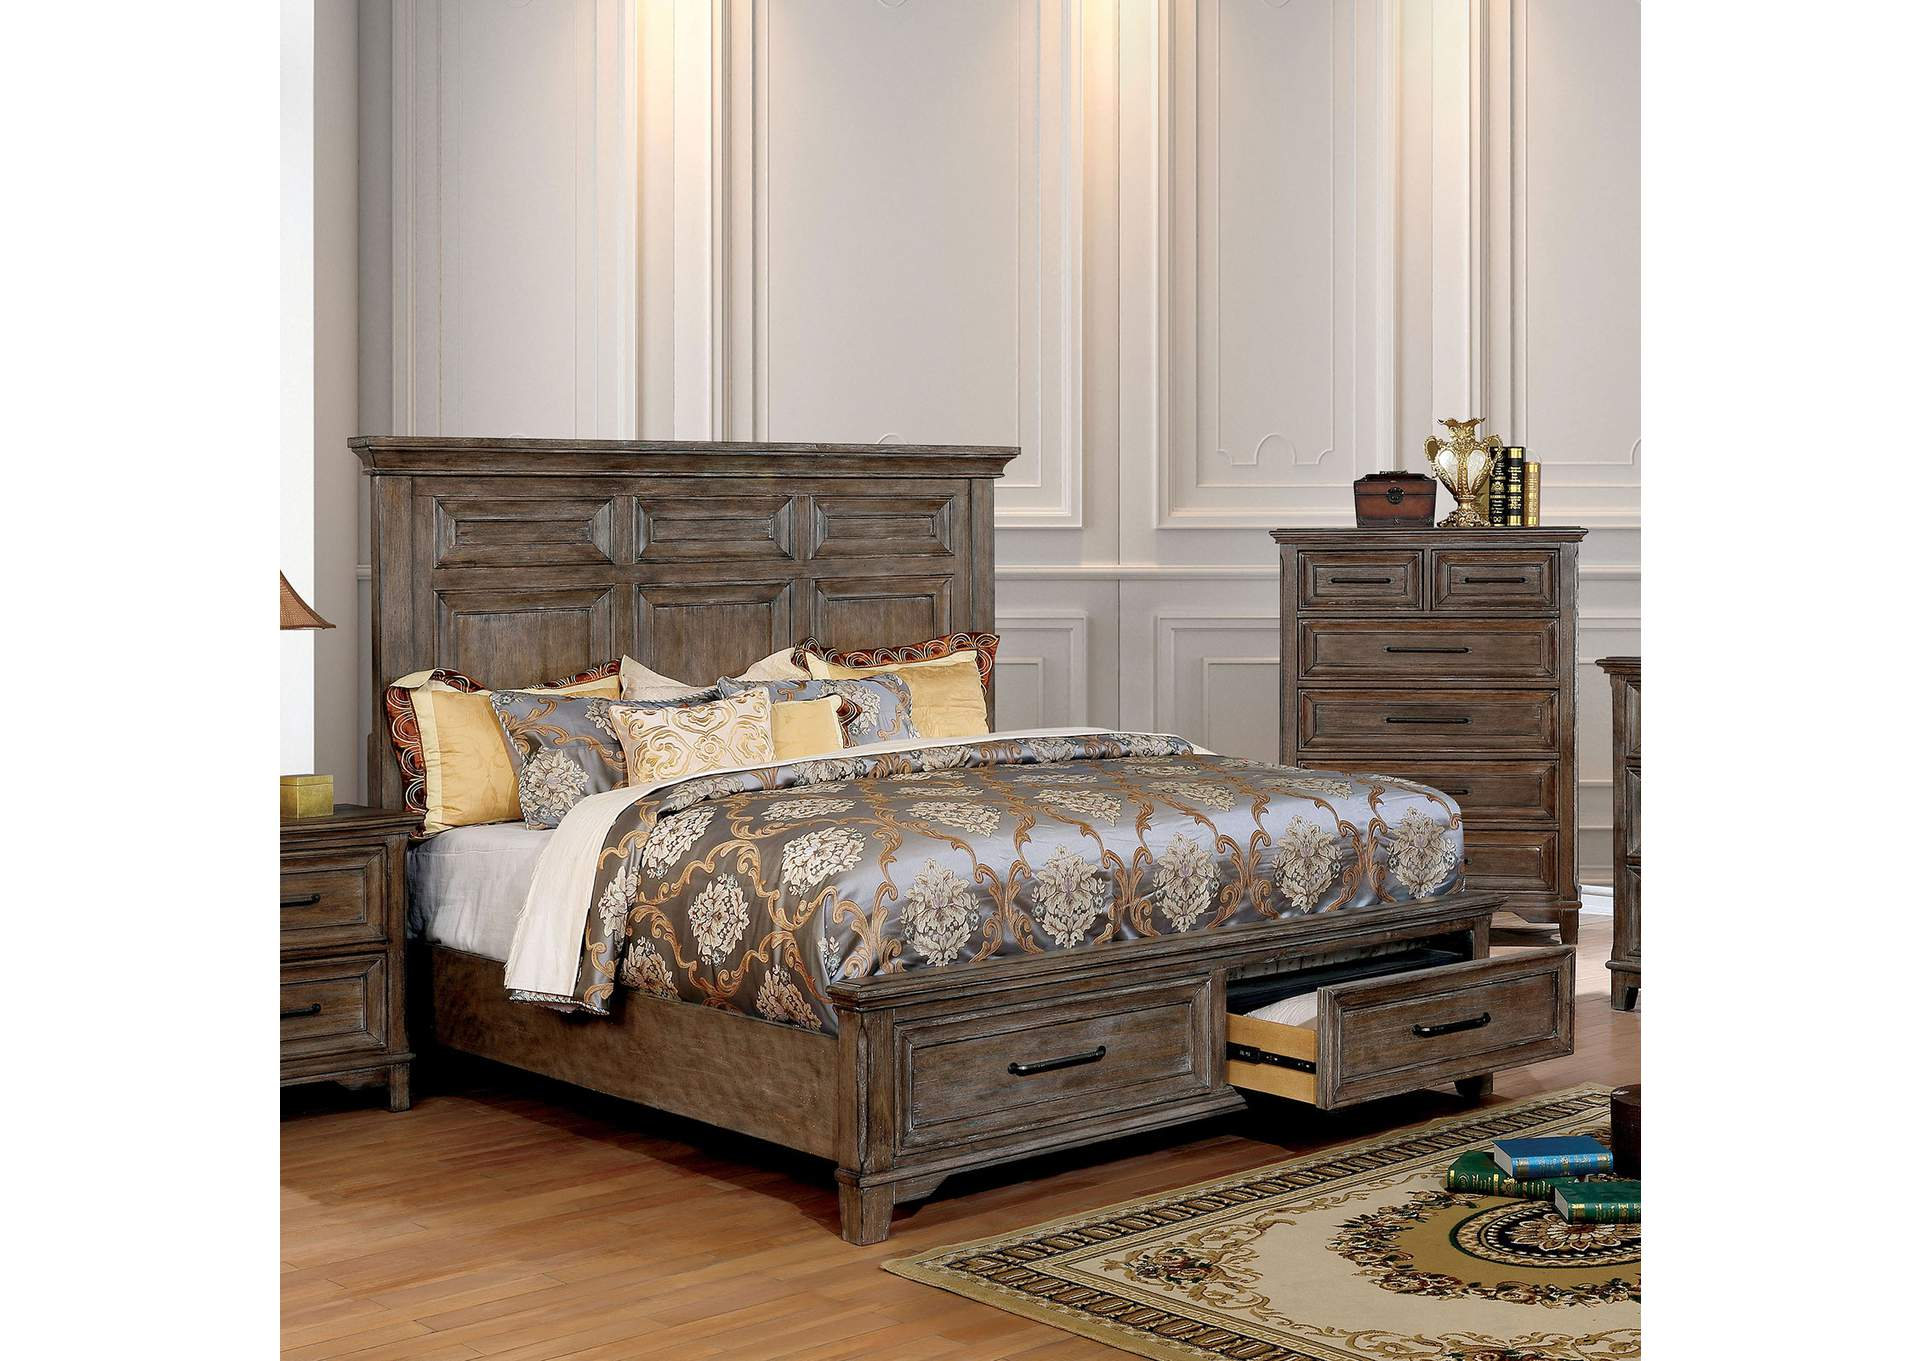 Oberon Queen Bed,Furniture of America